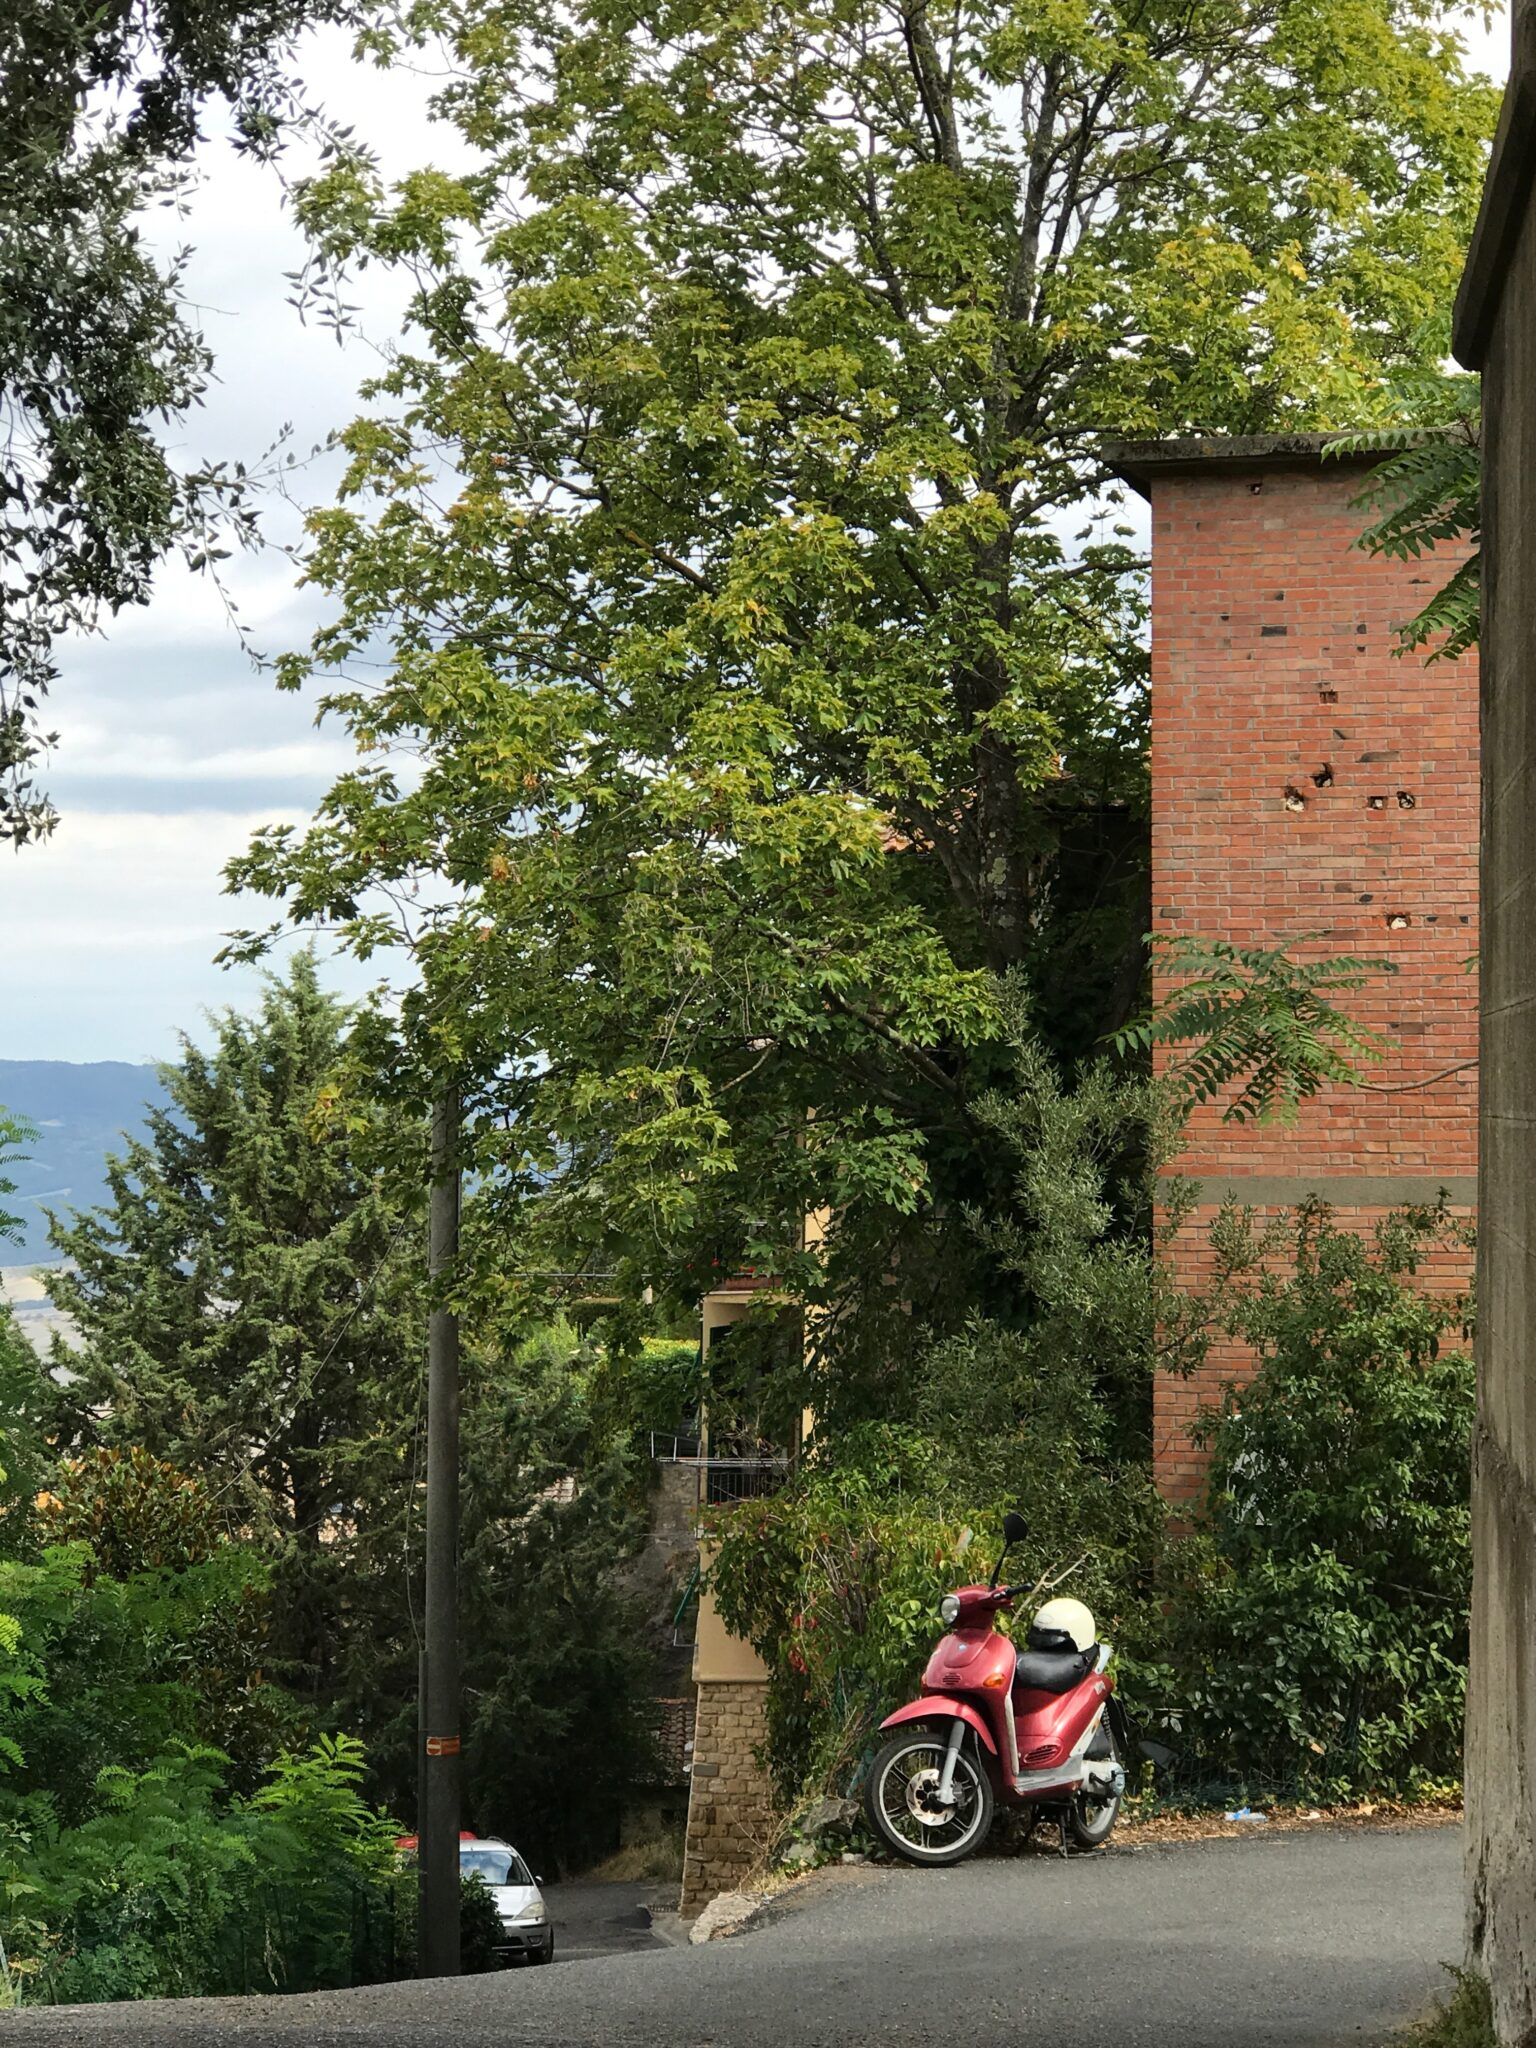 2017 – Volterra Day 3 – Museums & Cooking Class